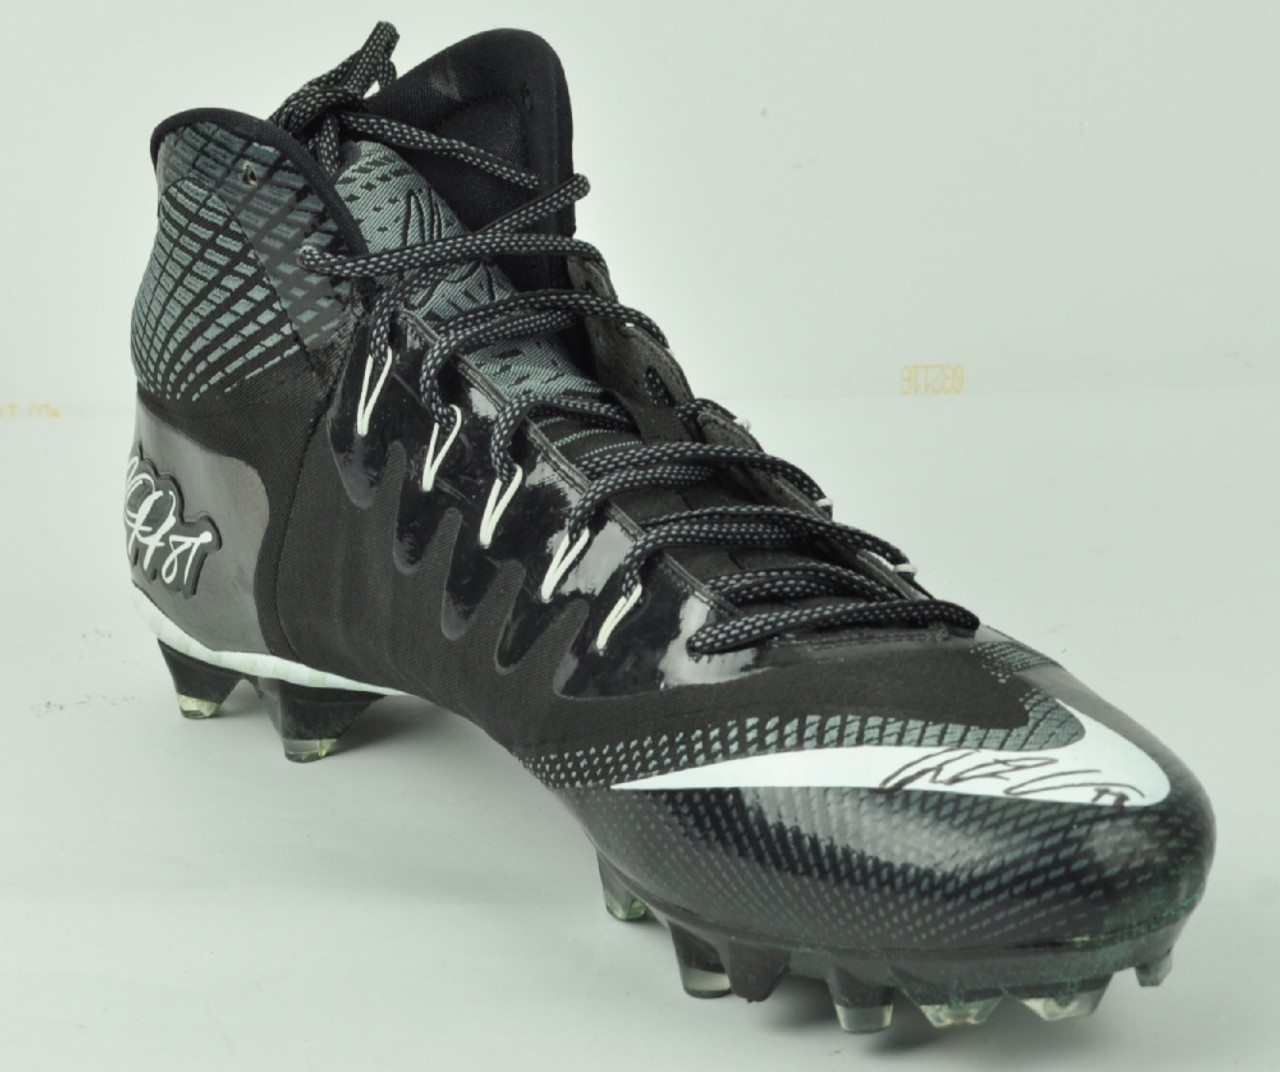 3016dc1036e46 NFL Miami Dolphins Linebacker Kiko Alonso 47 Signed Autographed Authentic  Player Black Nike Cleat JSA - Sinbad Sports Store